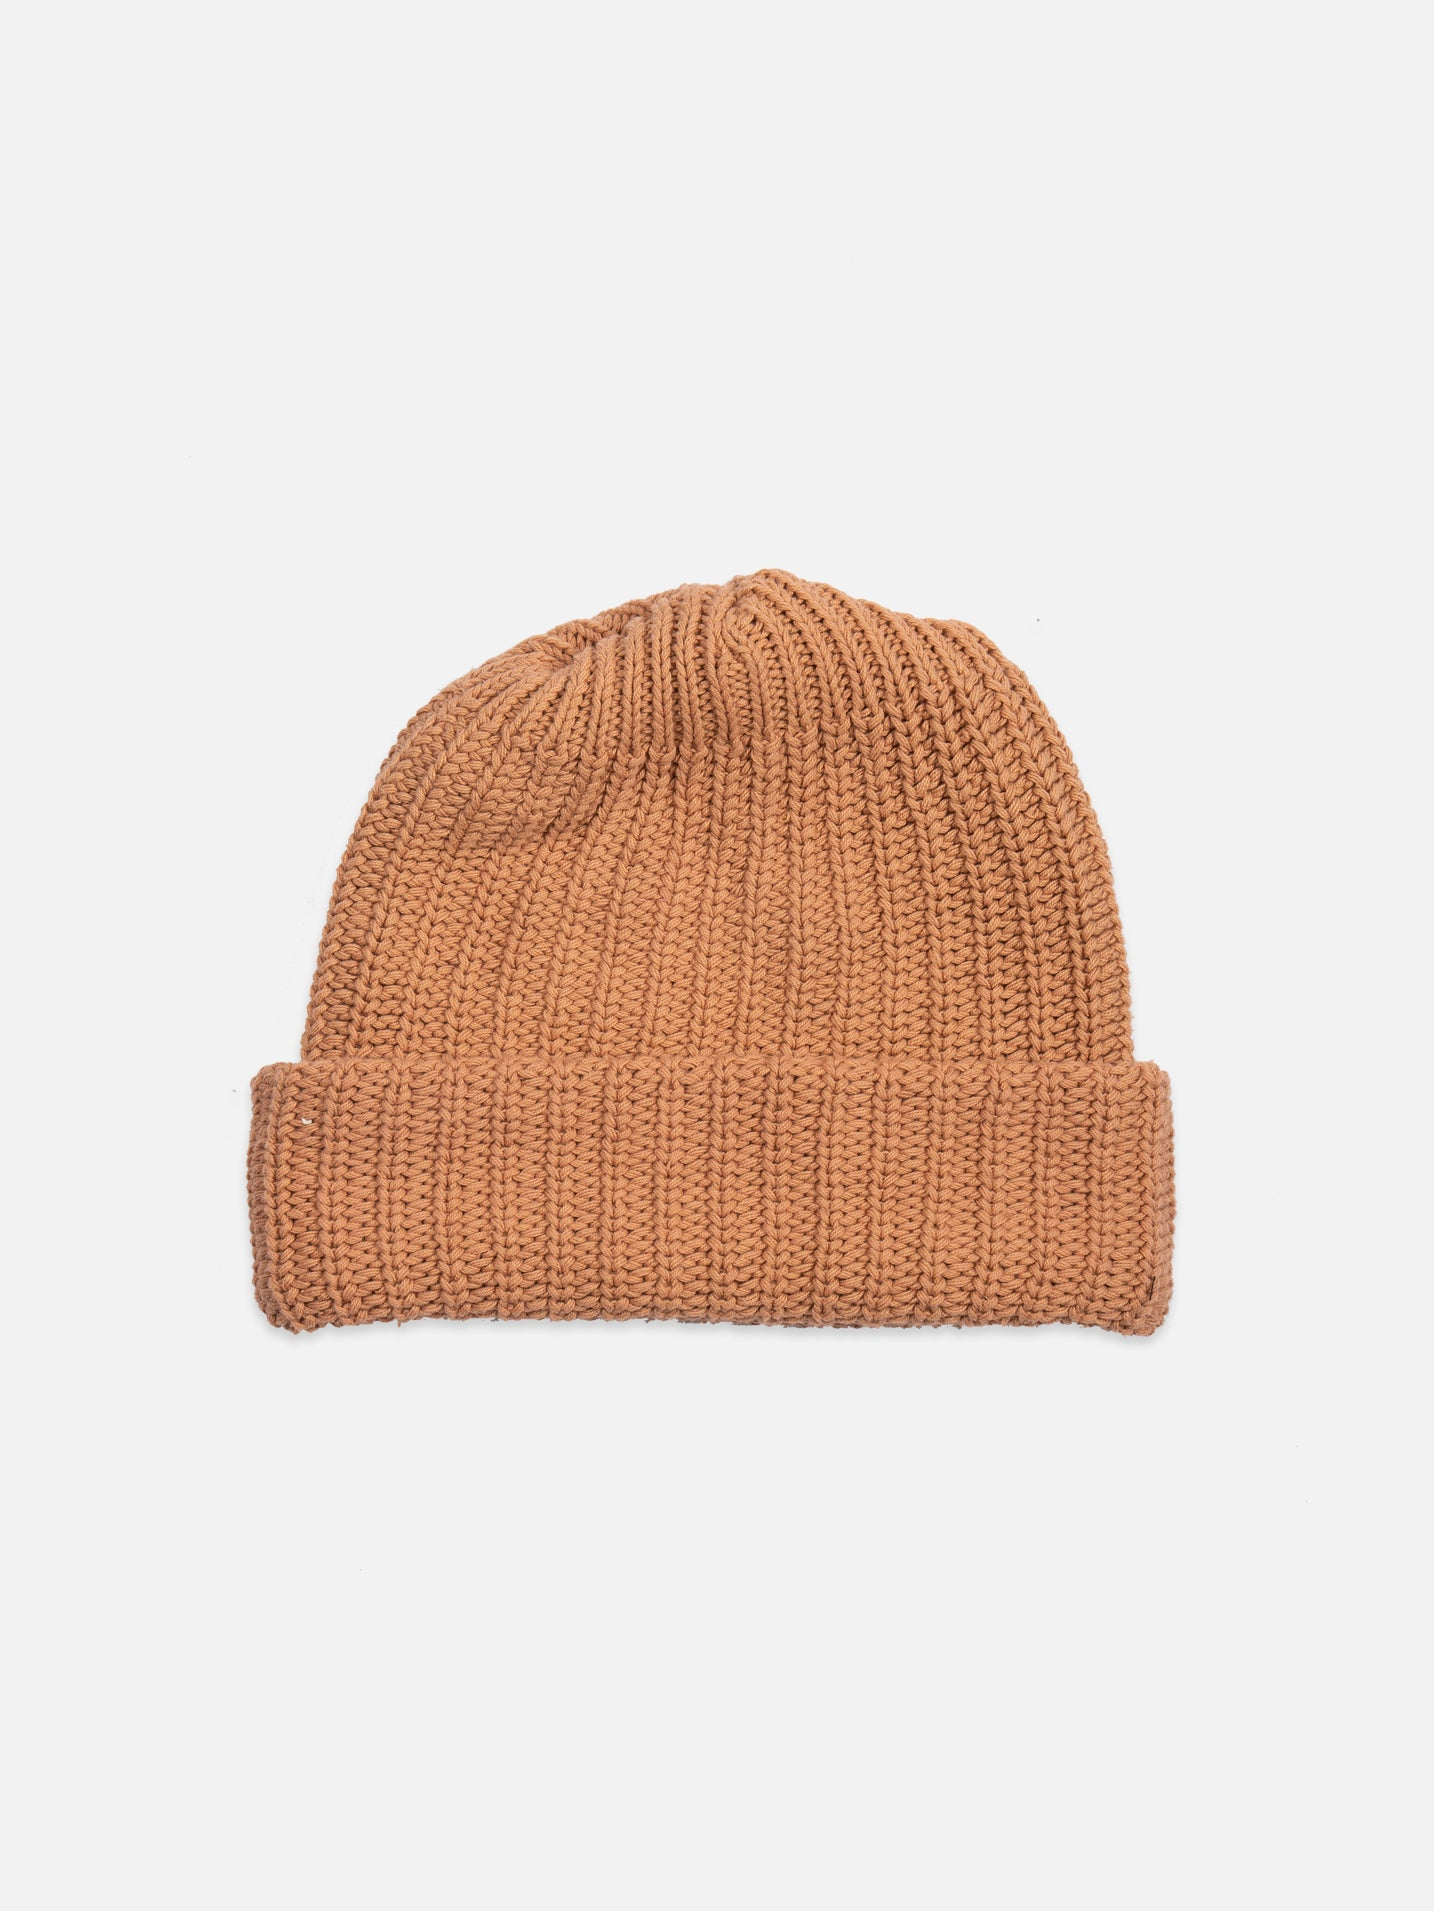 Heavy Knit Beanie - Dusty Rose